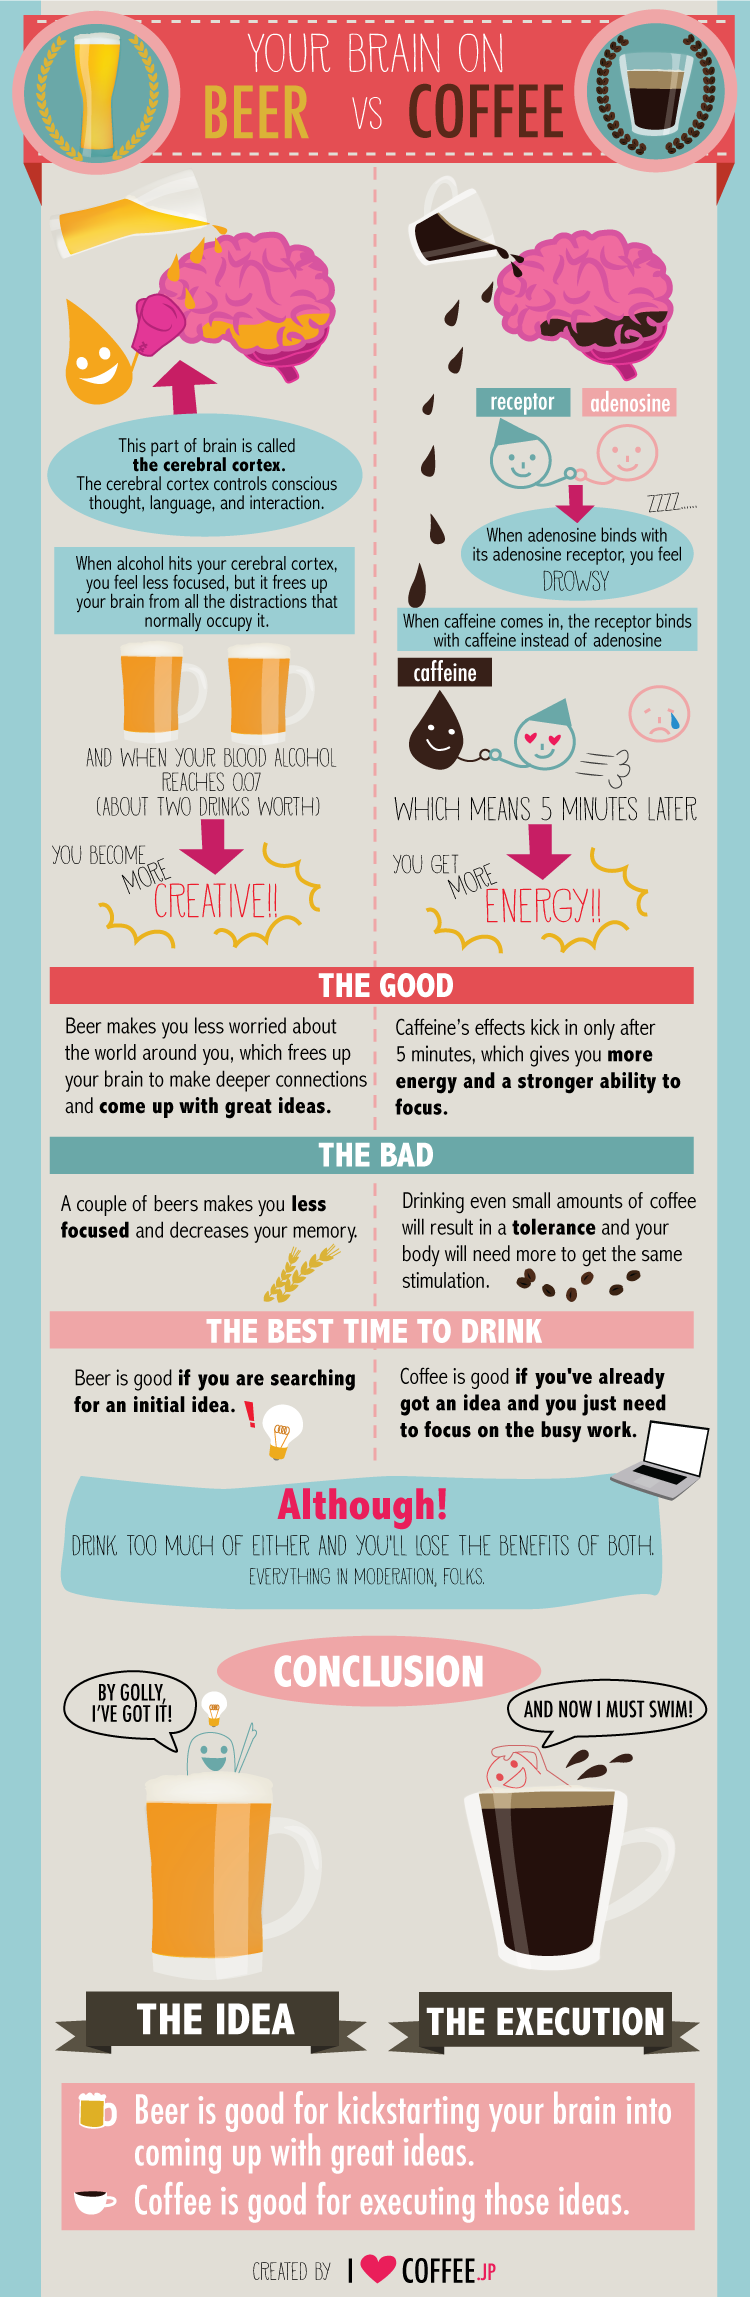 Your-brain-on-beer-vs.-coffee.